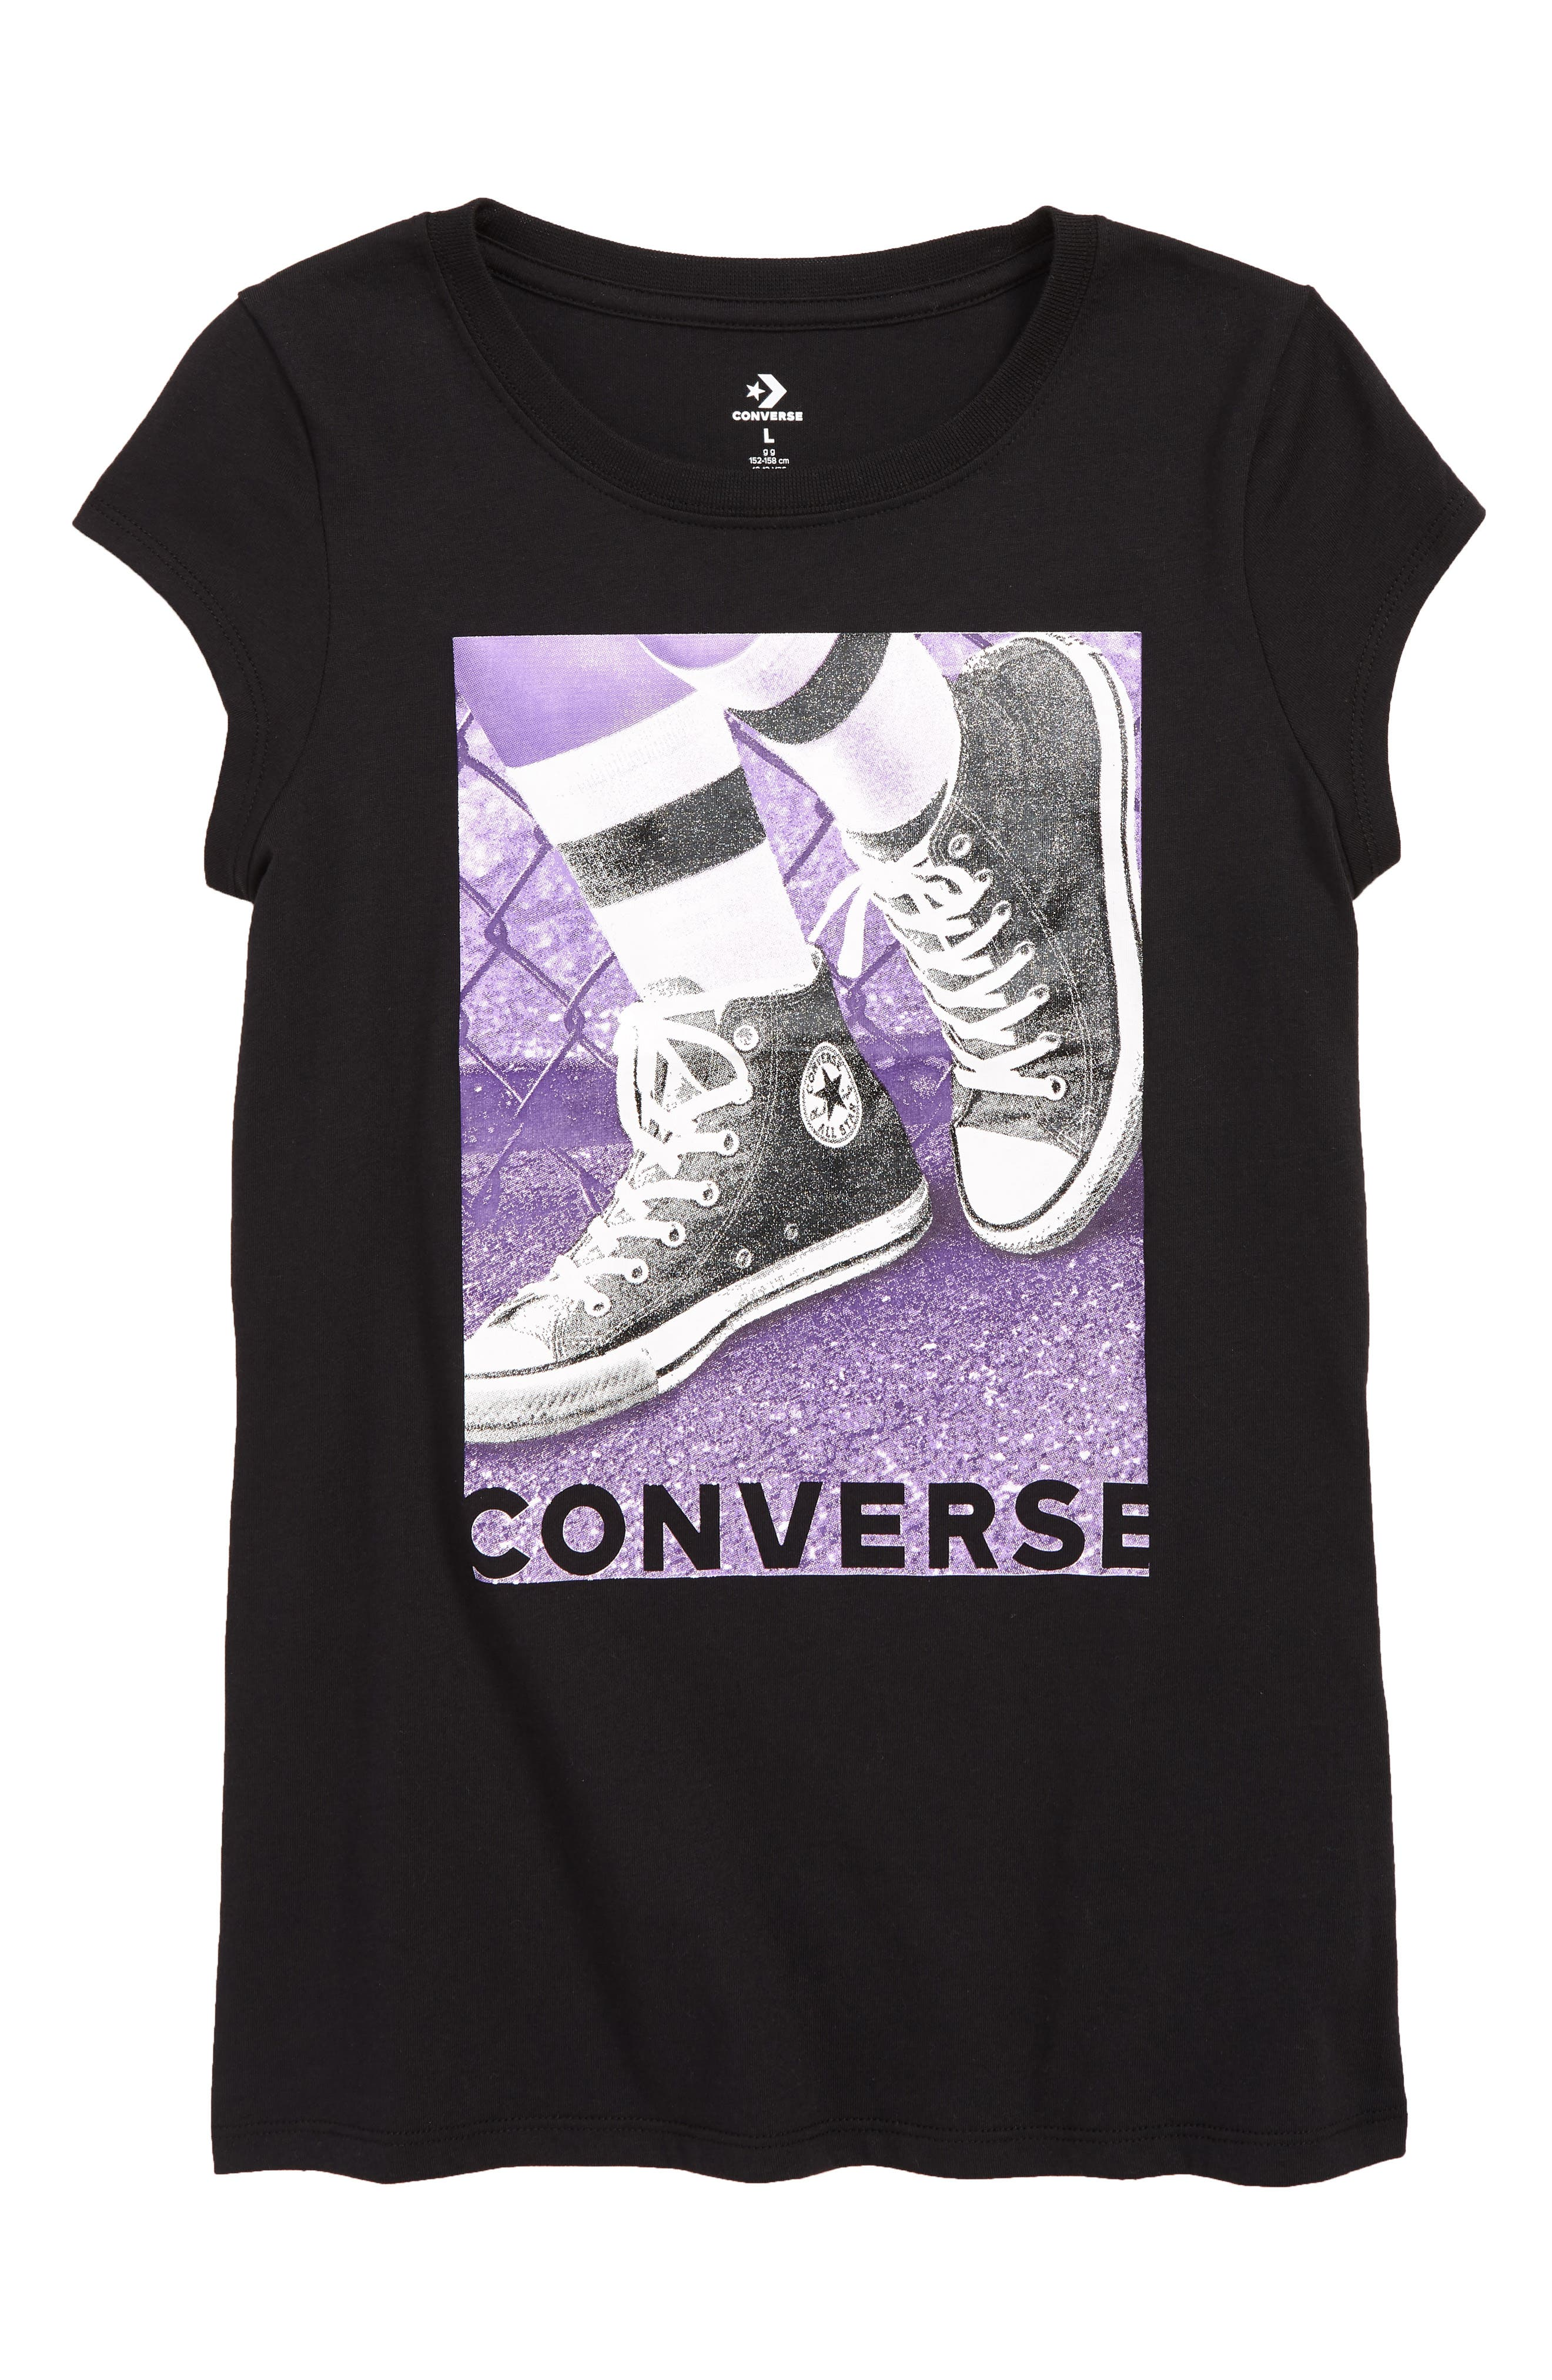 CONVERSE, Glitter Playground Photo Tee, Main thumbnail 1, color, BLACK